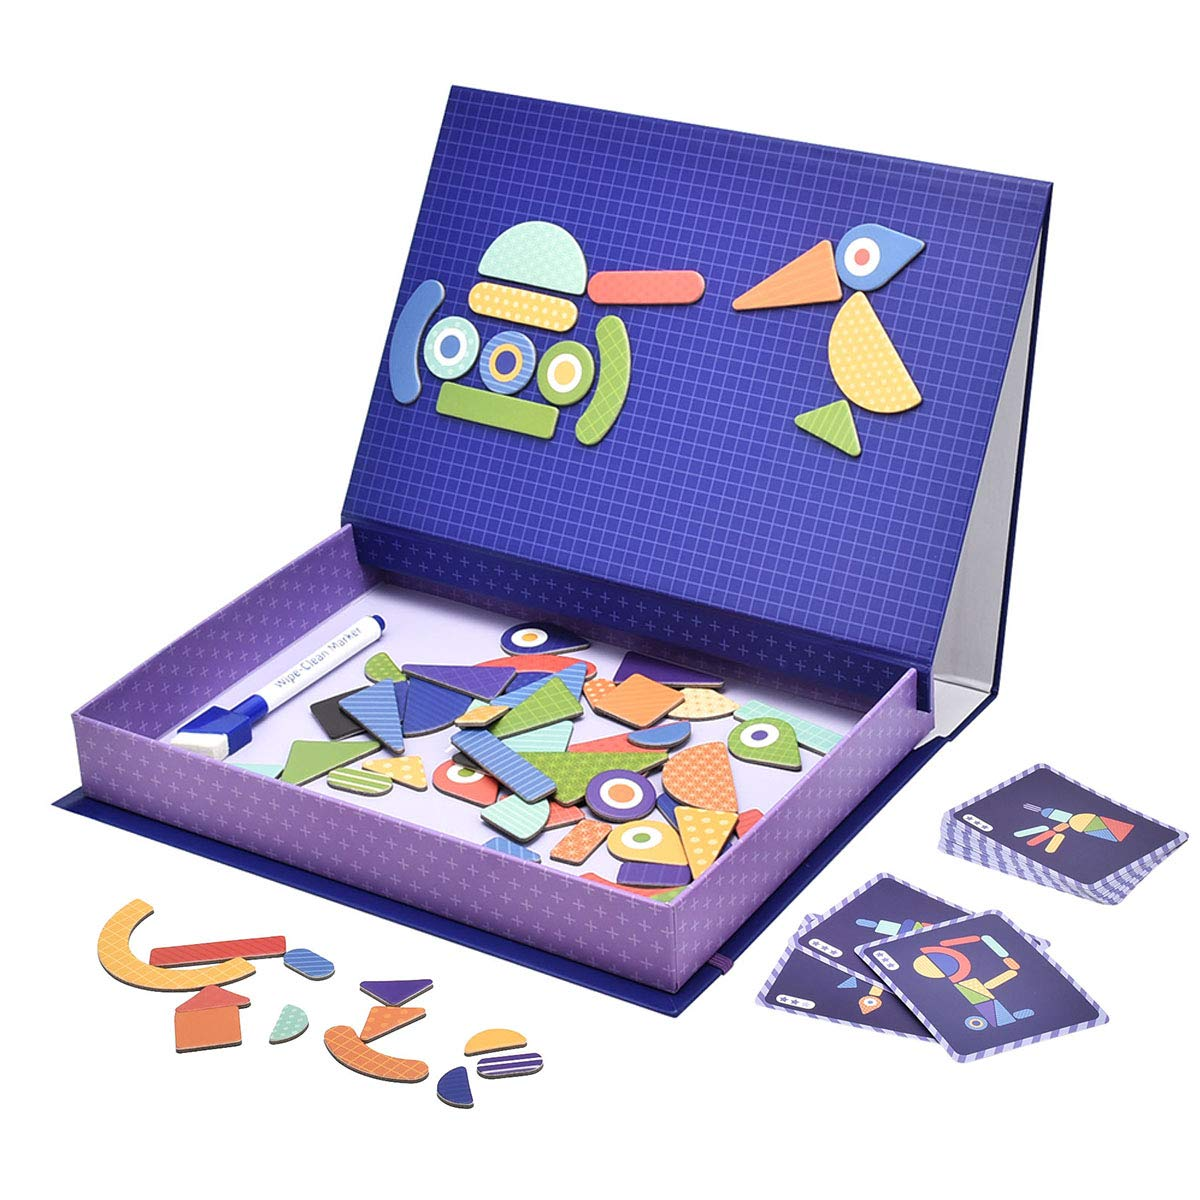 STEM Education Toys Magnetic Puzzles for Kids, YIHUNION 70 Pieces Cardboard Jigsaw & Drawing Sketchpad Learning Toys Dry Erase Board Games For Children Kids